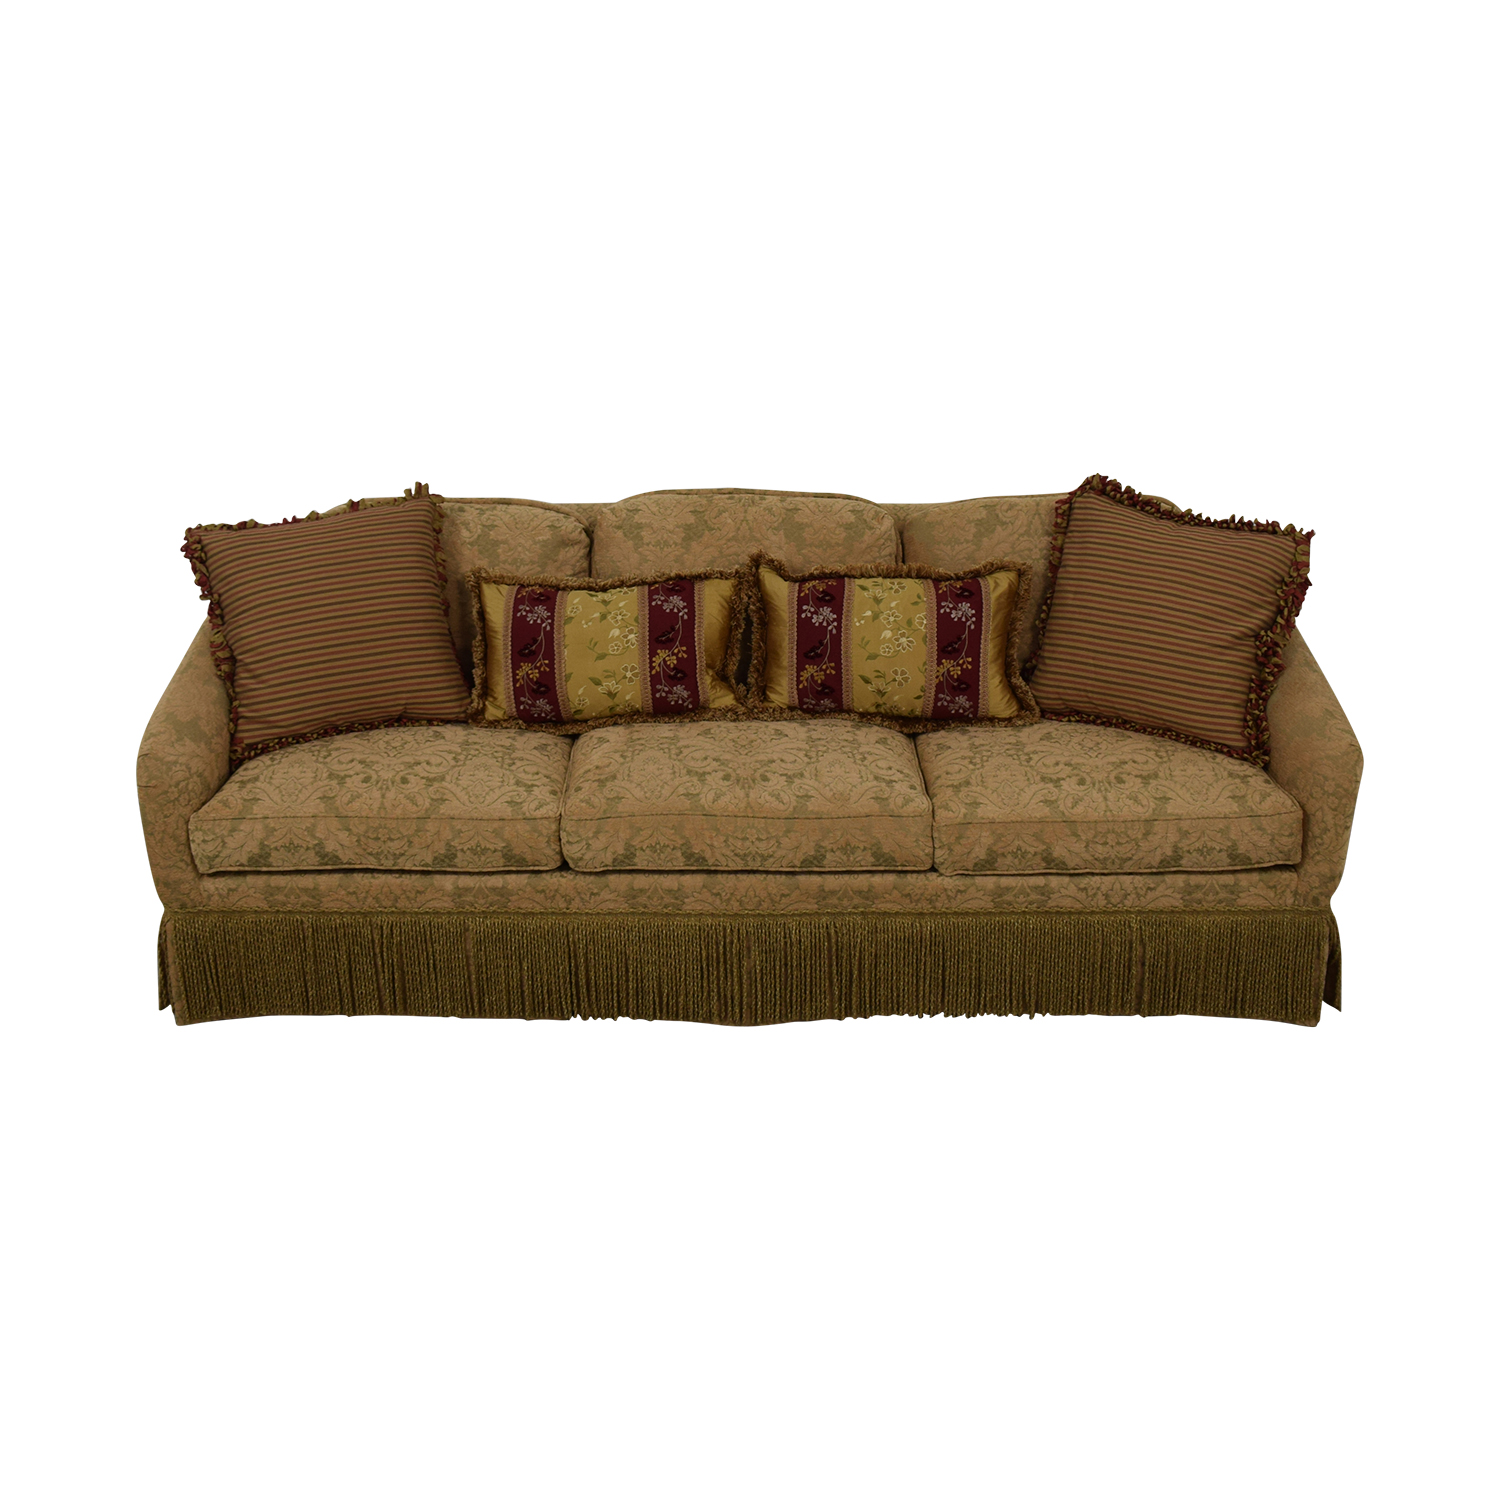 Hickory Chair Hickory Chair Three-Cushion Floral Sofa used